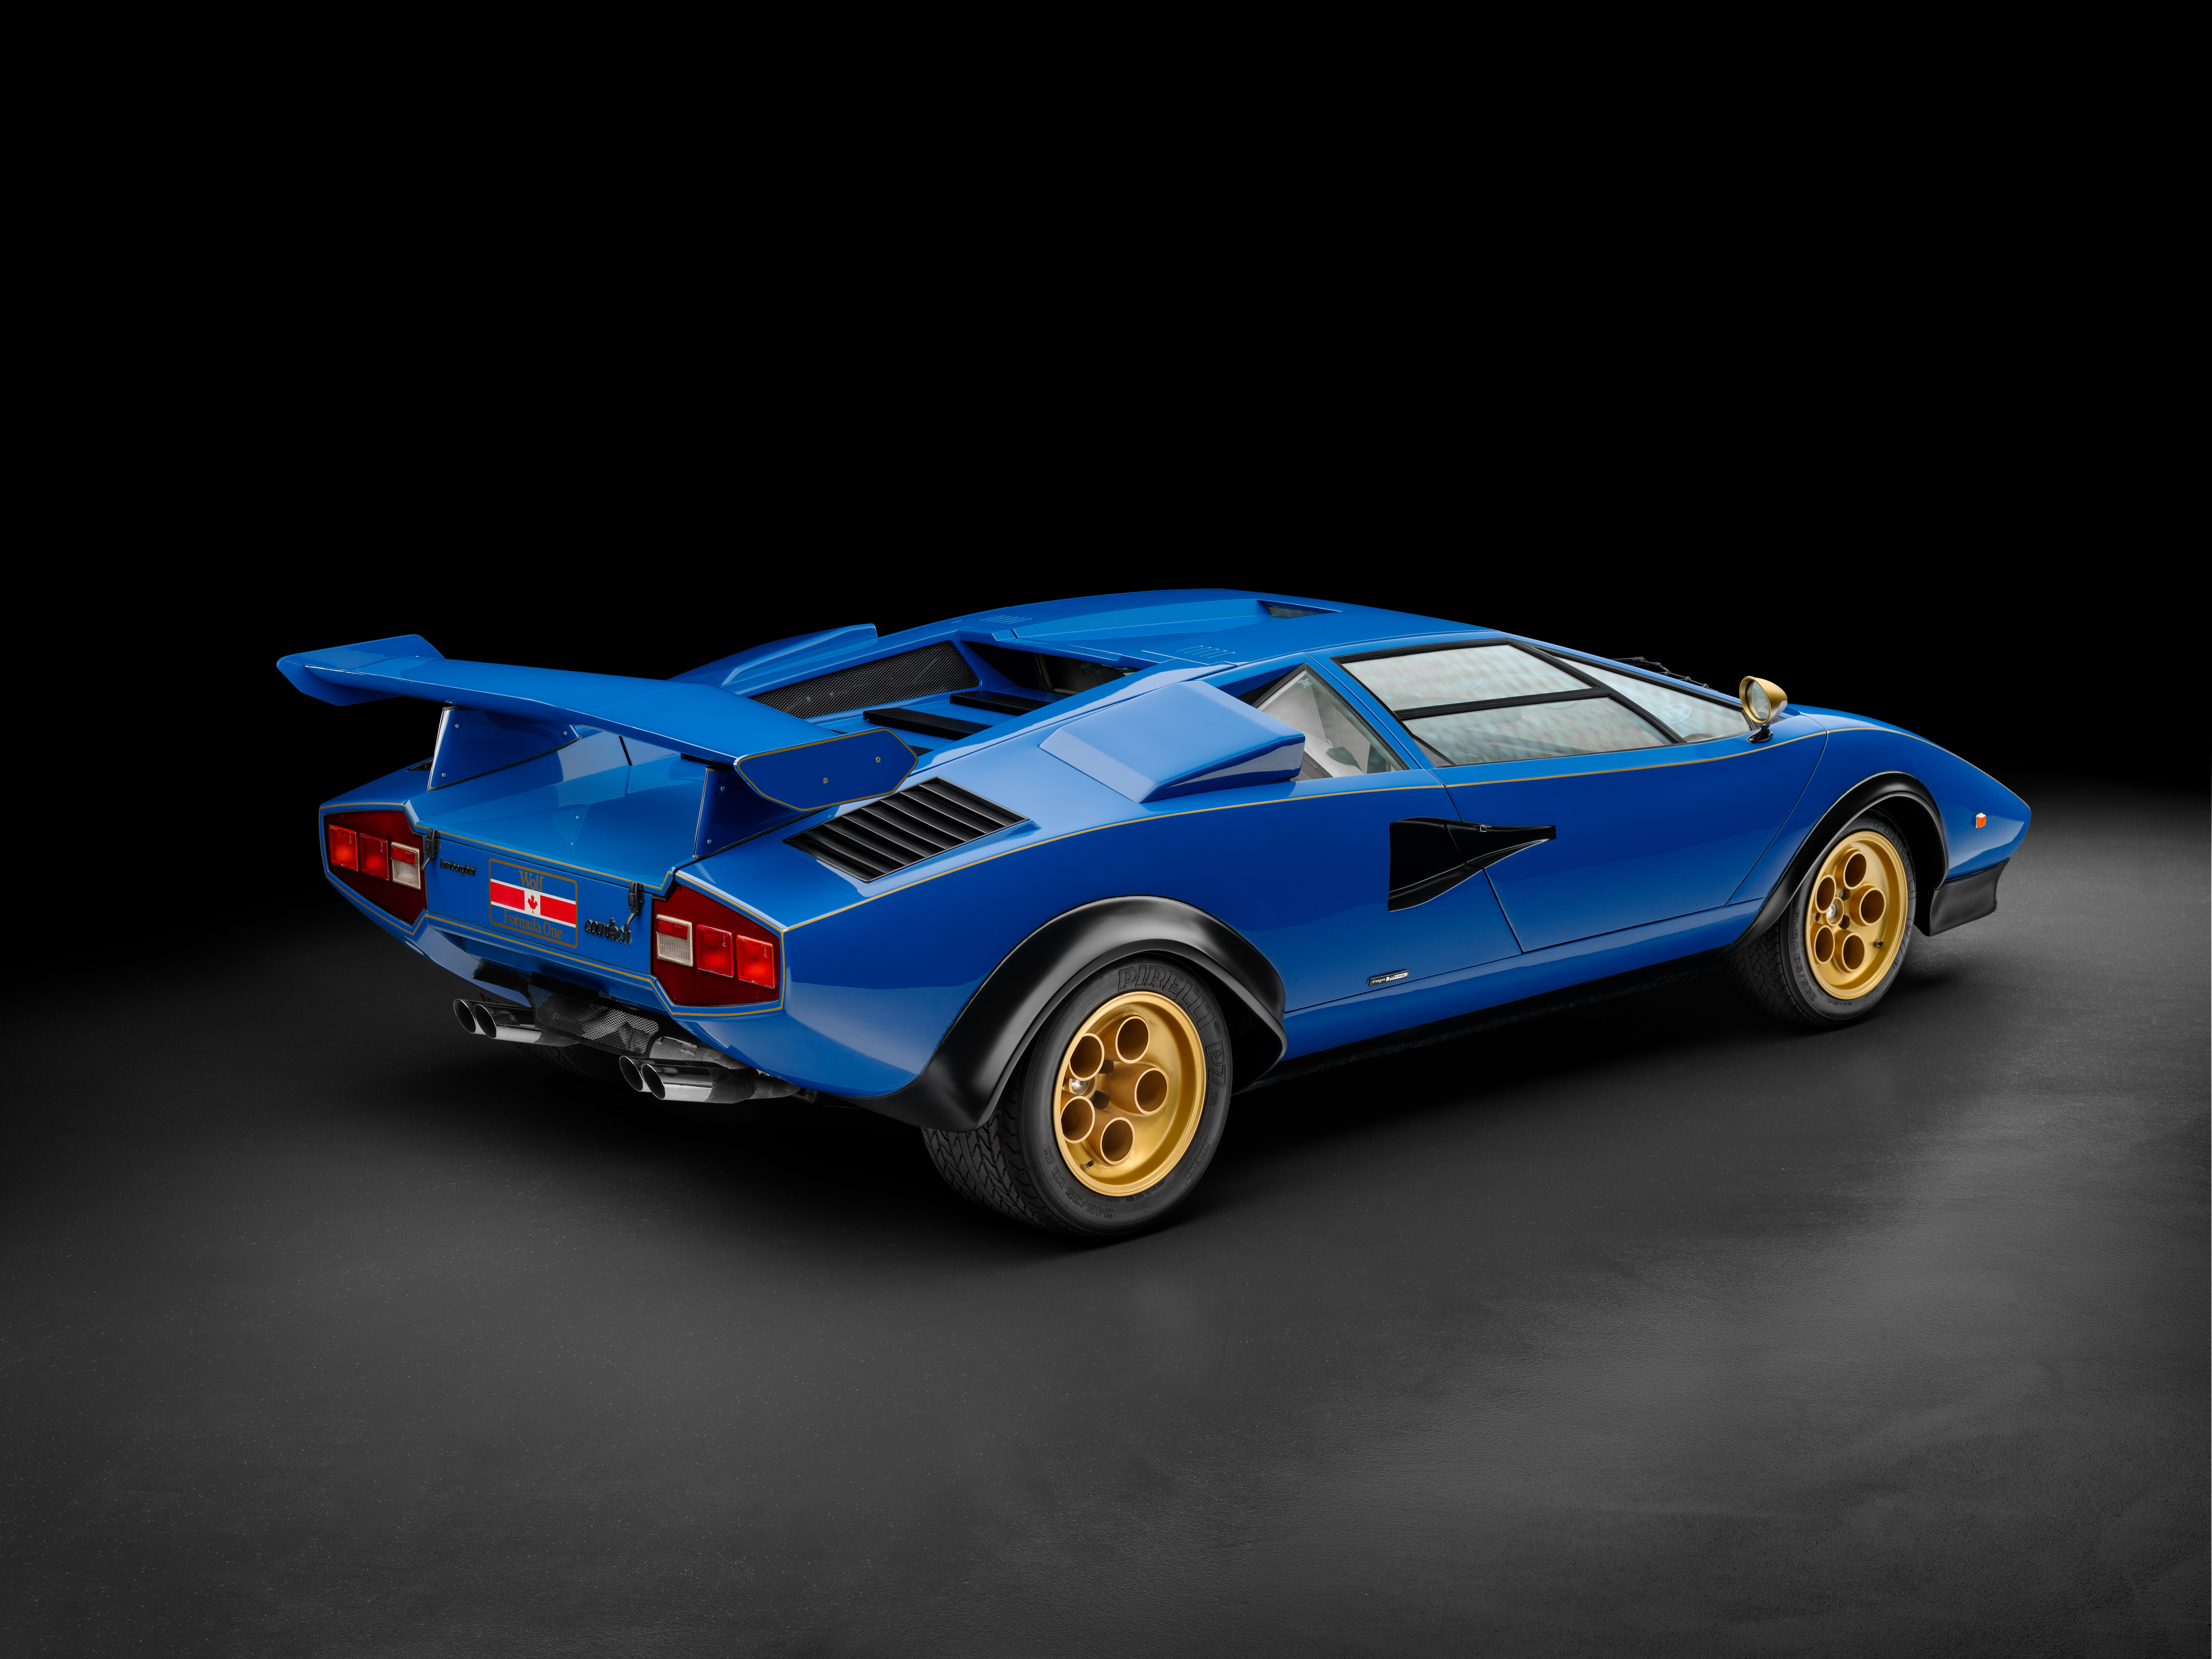 GALLERY: Lamborghini colourful history